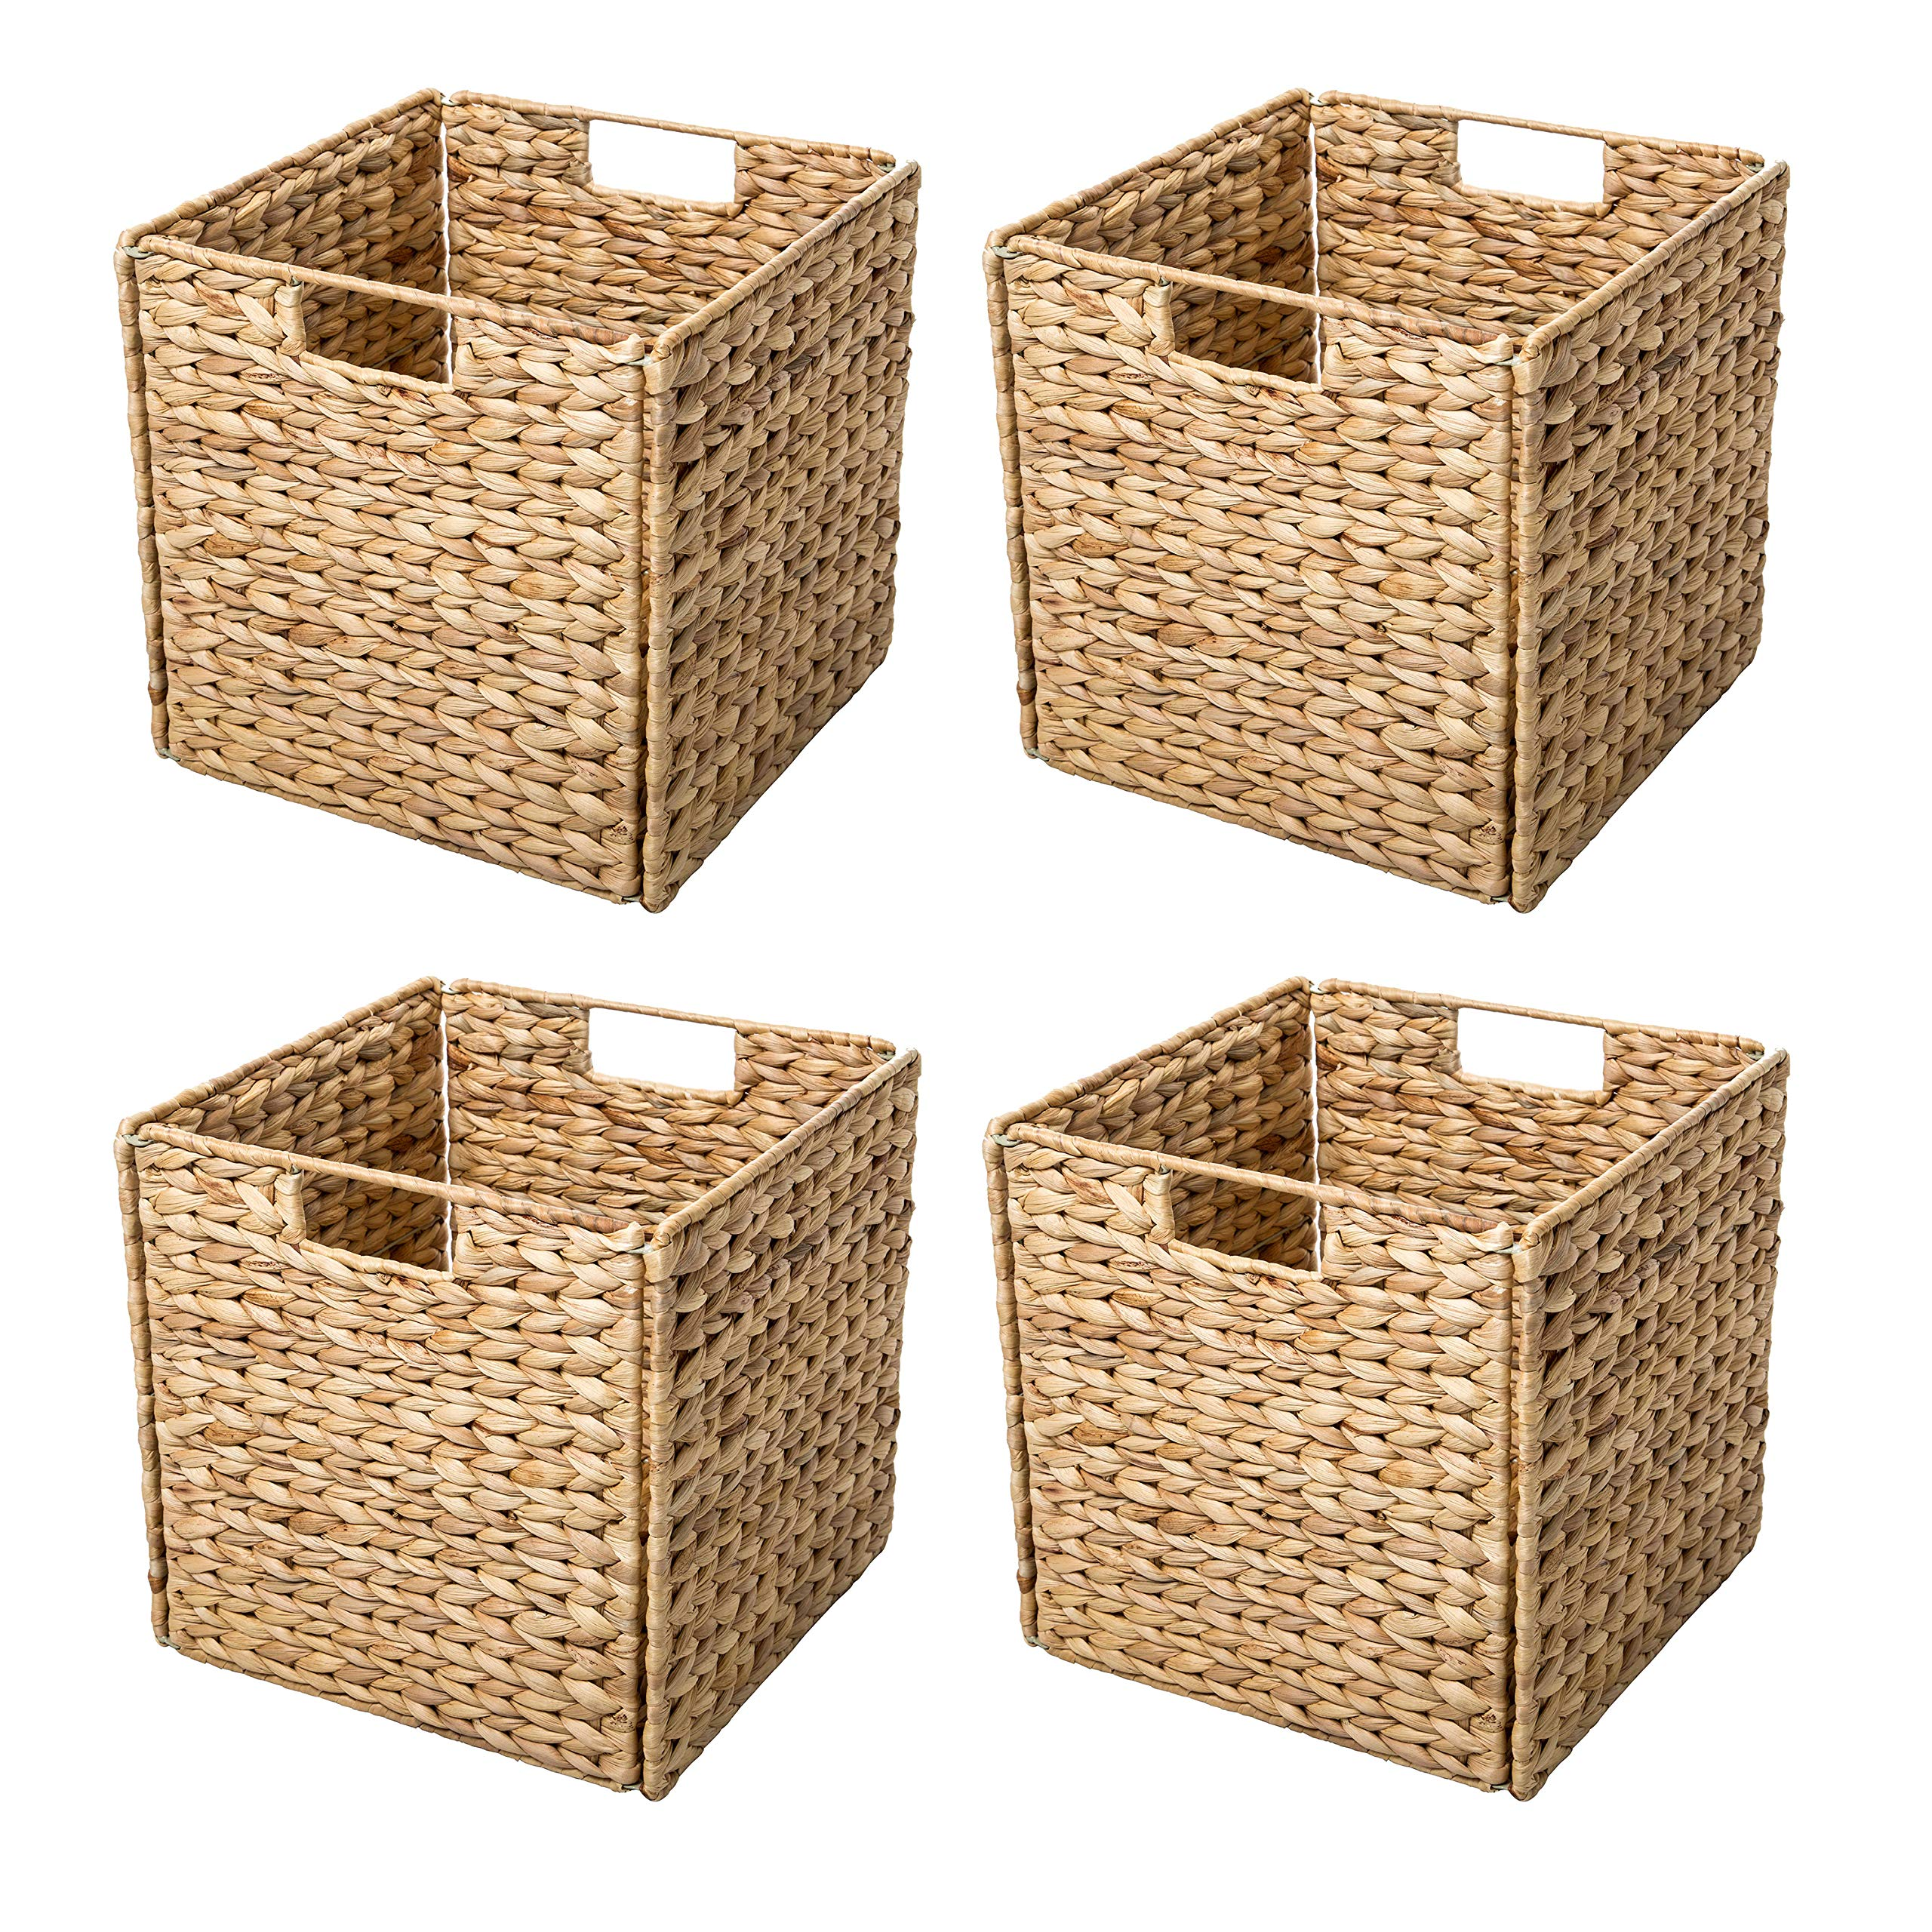 Trademark Innovations Foldable Hyacinth Storage Baskets with Iron Wire Frame (Set of 4) by Trademark Innovations